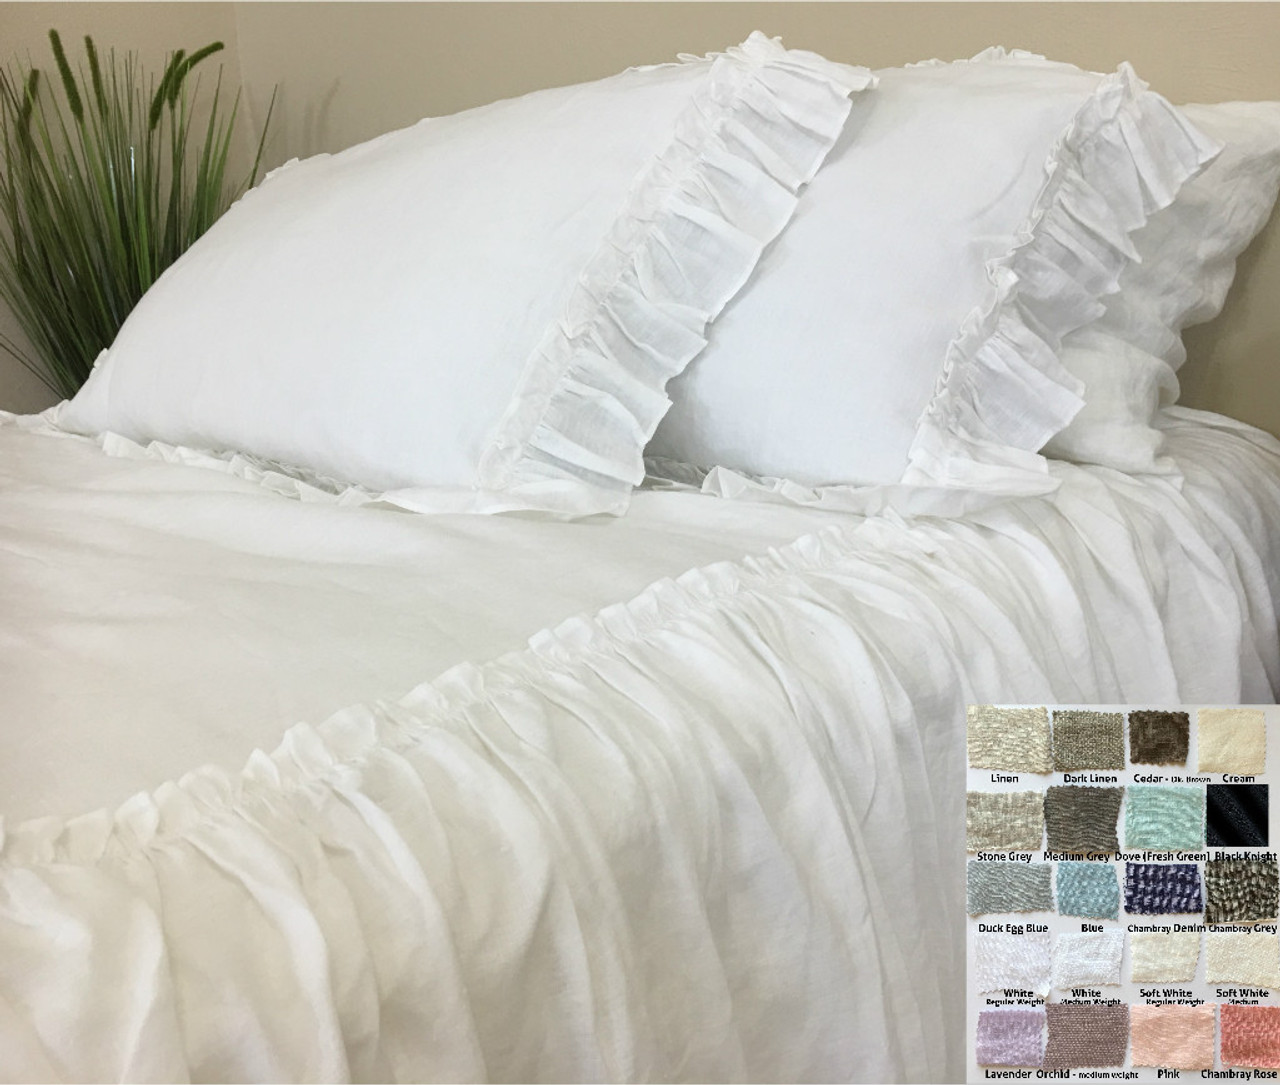 White Linen Bedspread With Ruffles On Top, Fabulous!